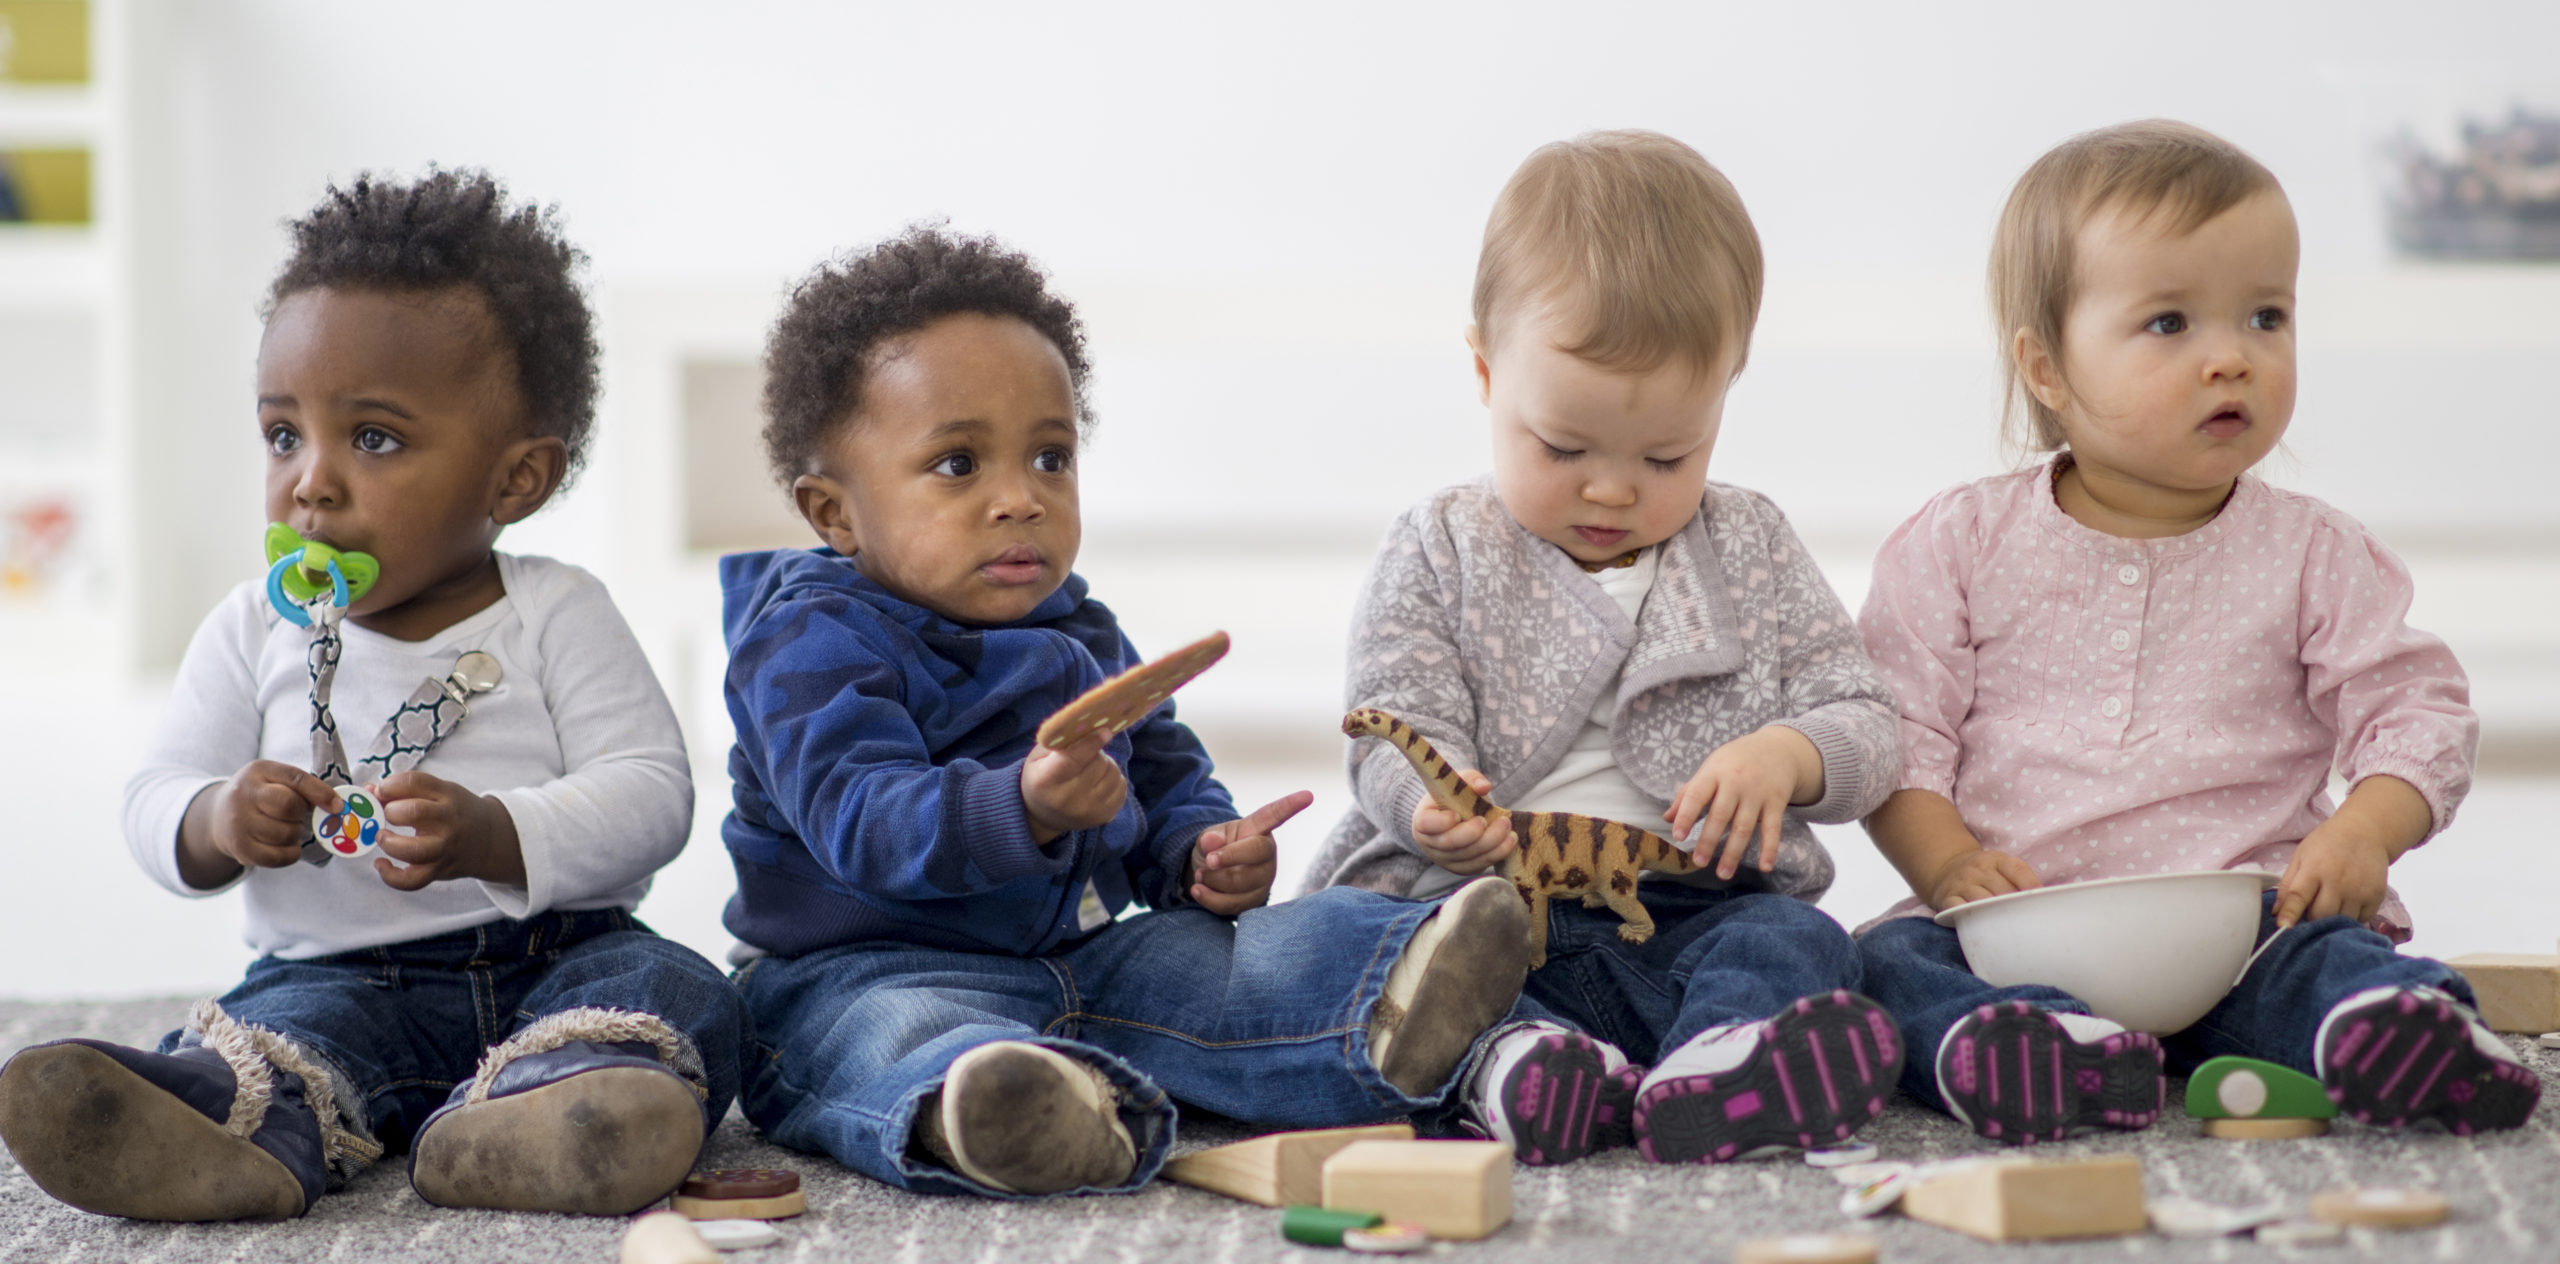 group of toddlers playing together with toys